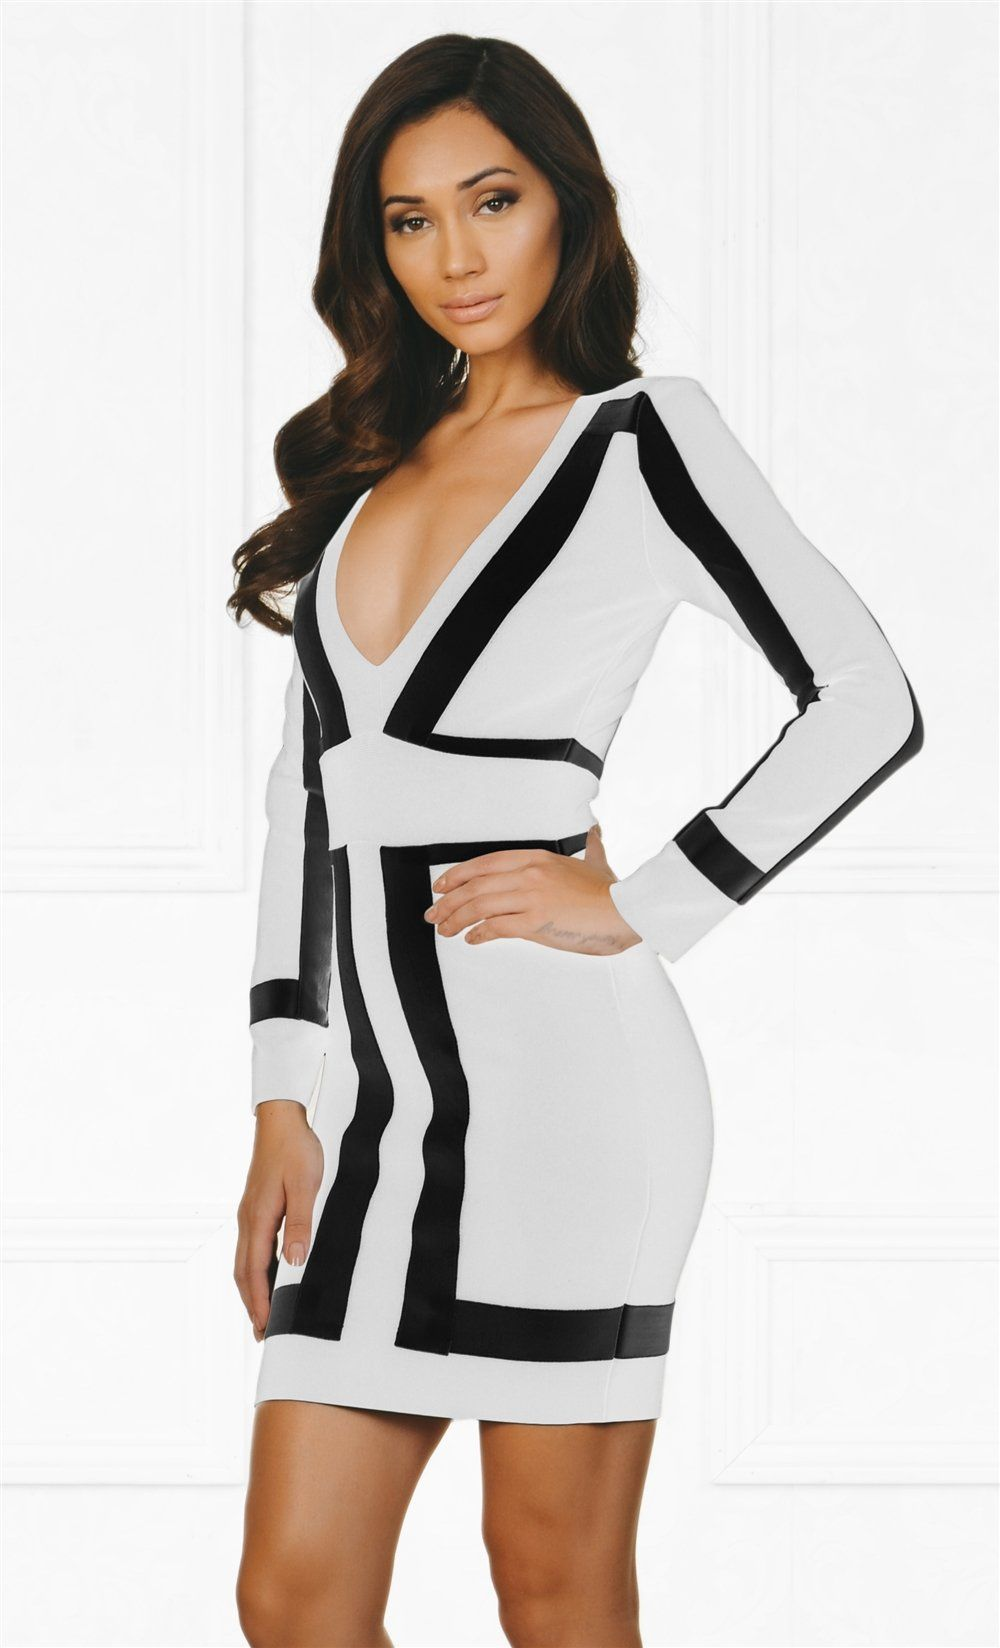 9e00f8ce7a30 Indie XO Always On Time White Black Color Block Bandage Long Sleeve Plunge  V Neck Bodycon Mini Dress - As Seen on Amrezy